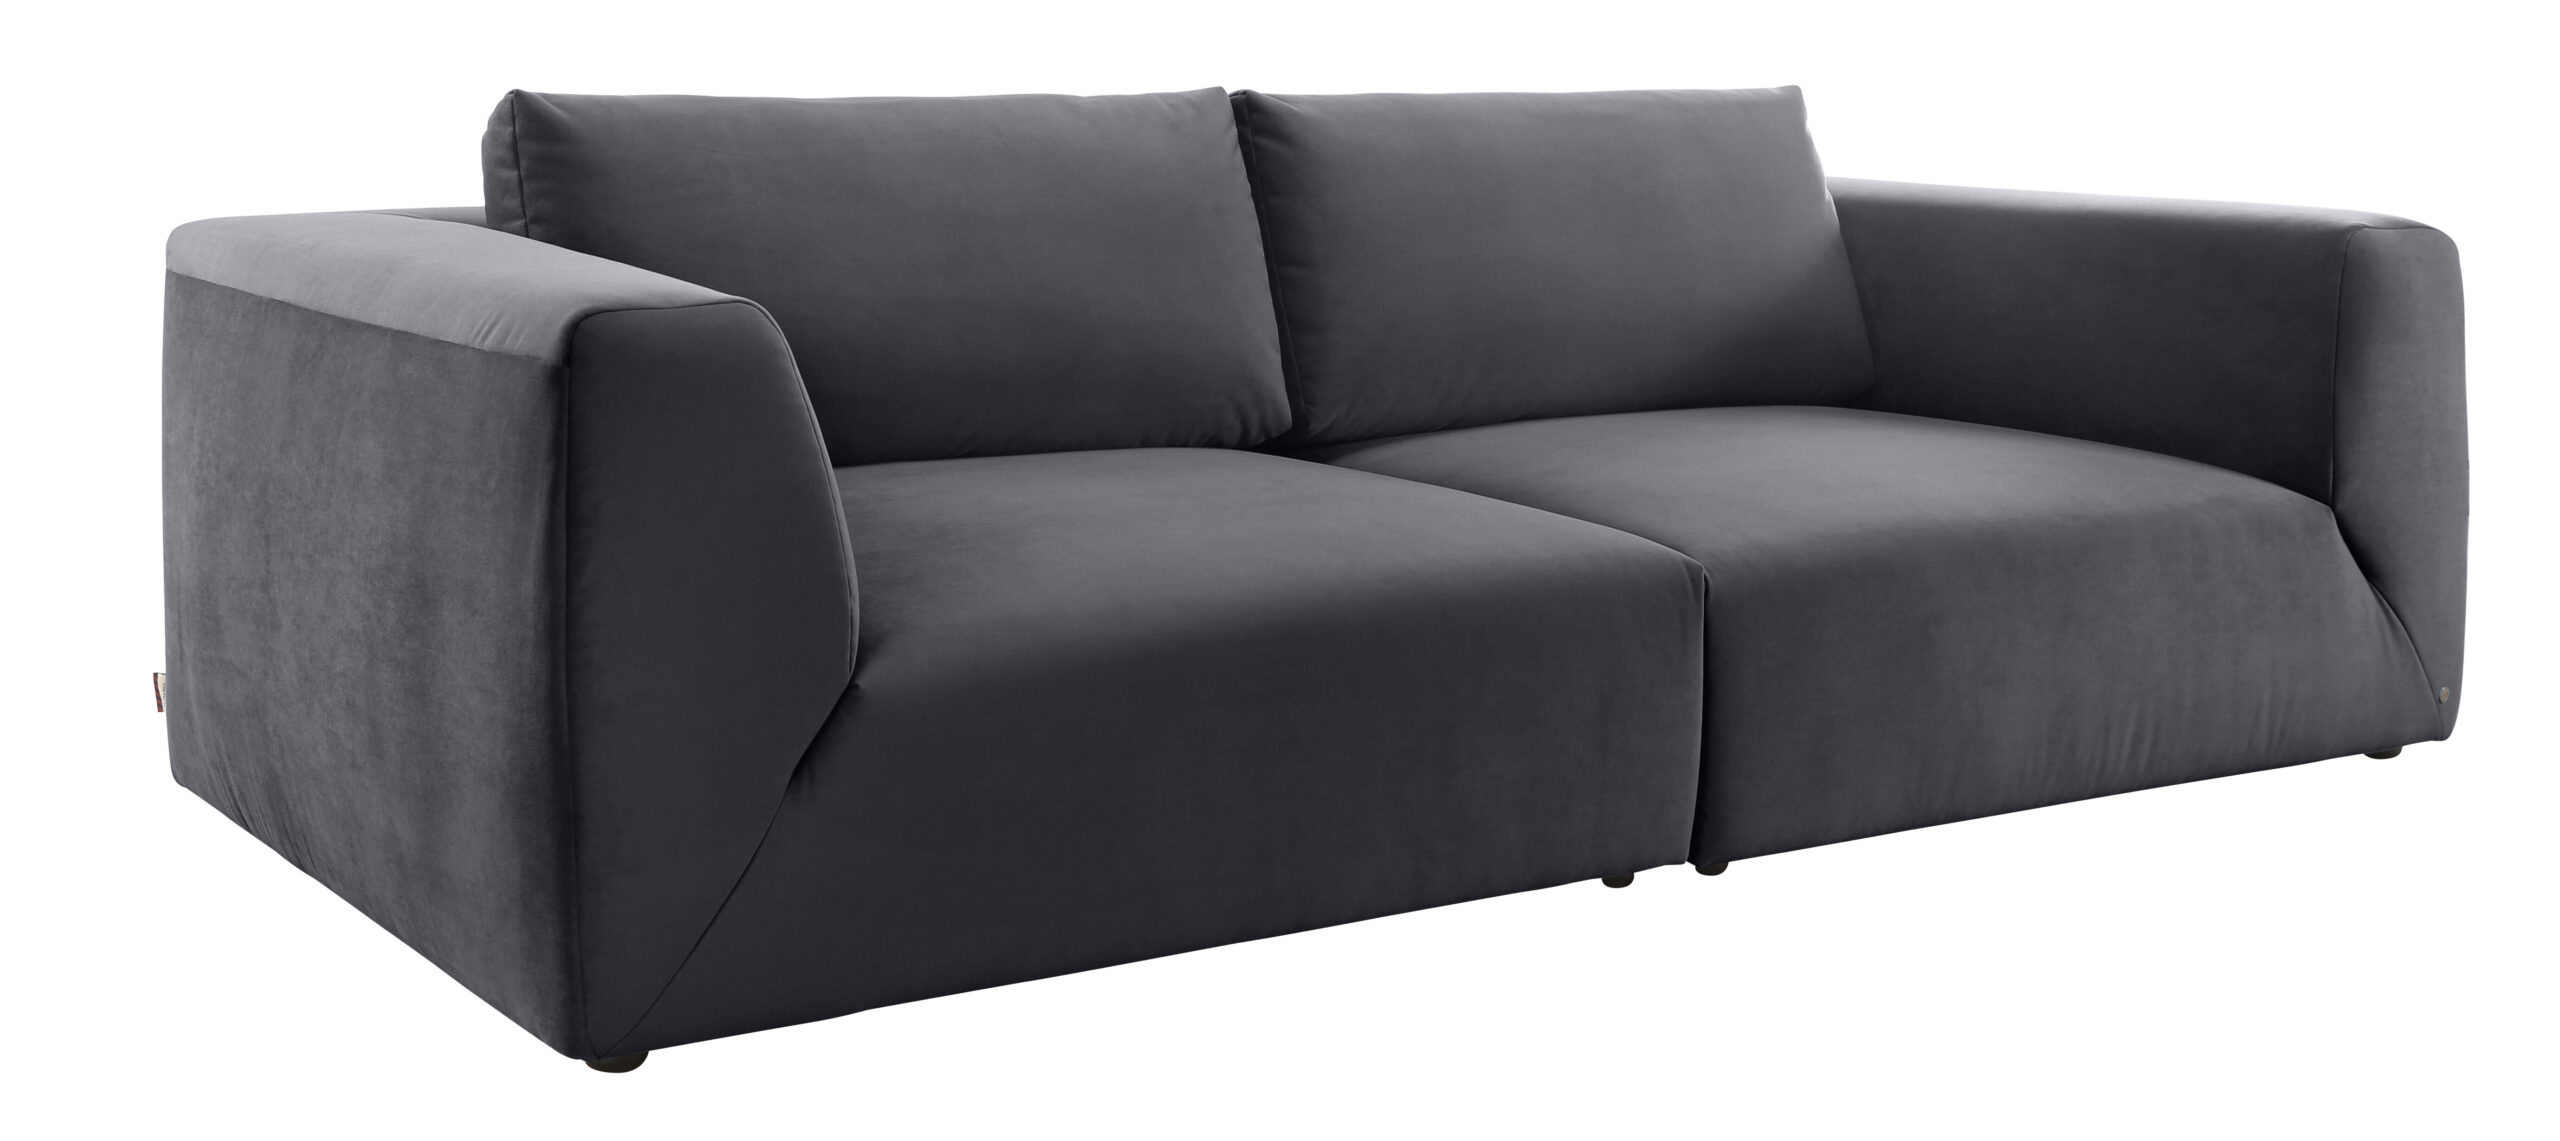 Full Size of Tom Tailor Sofa Bigsofa Big Cube Round Style 304 Cm Wayfairde Walter Knoll Machalke Rolf Benz Sofort Lieferbar Ebay Langes U Form Xxl Himolla Dauerschläfer Sofa Tom Tailor Sofa